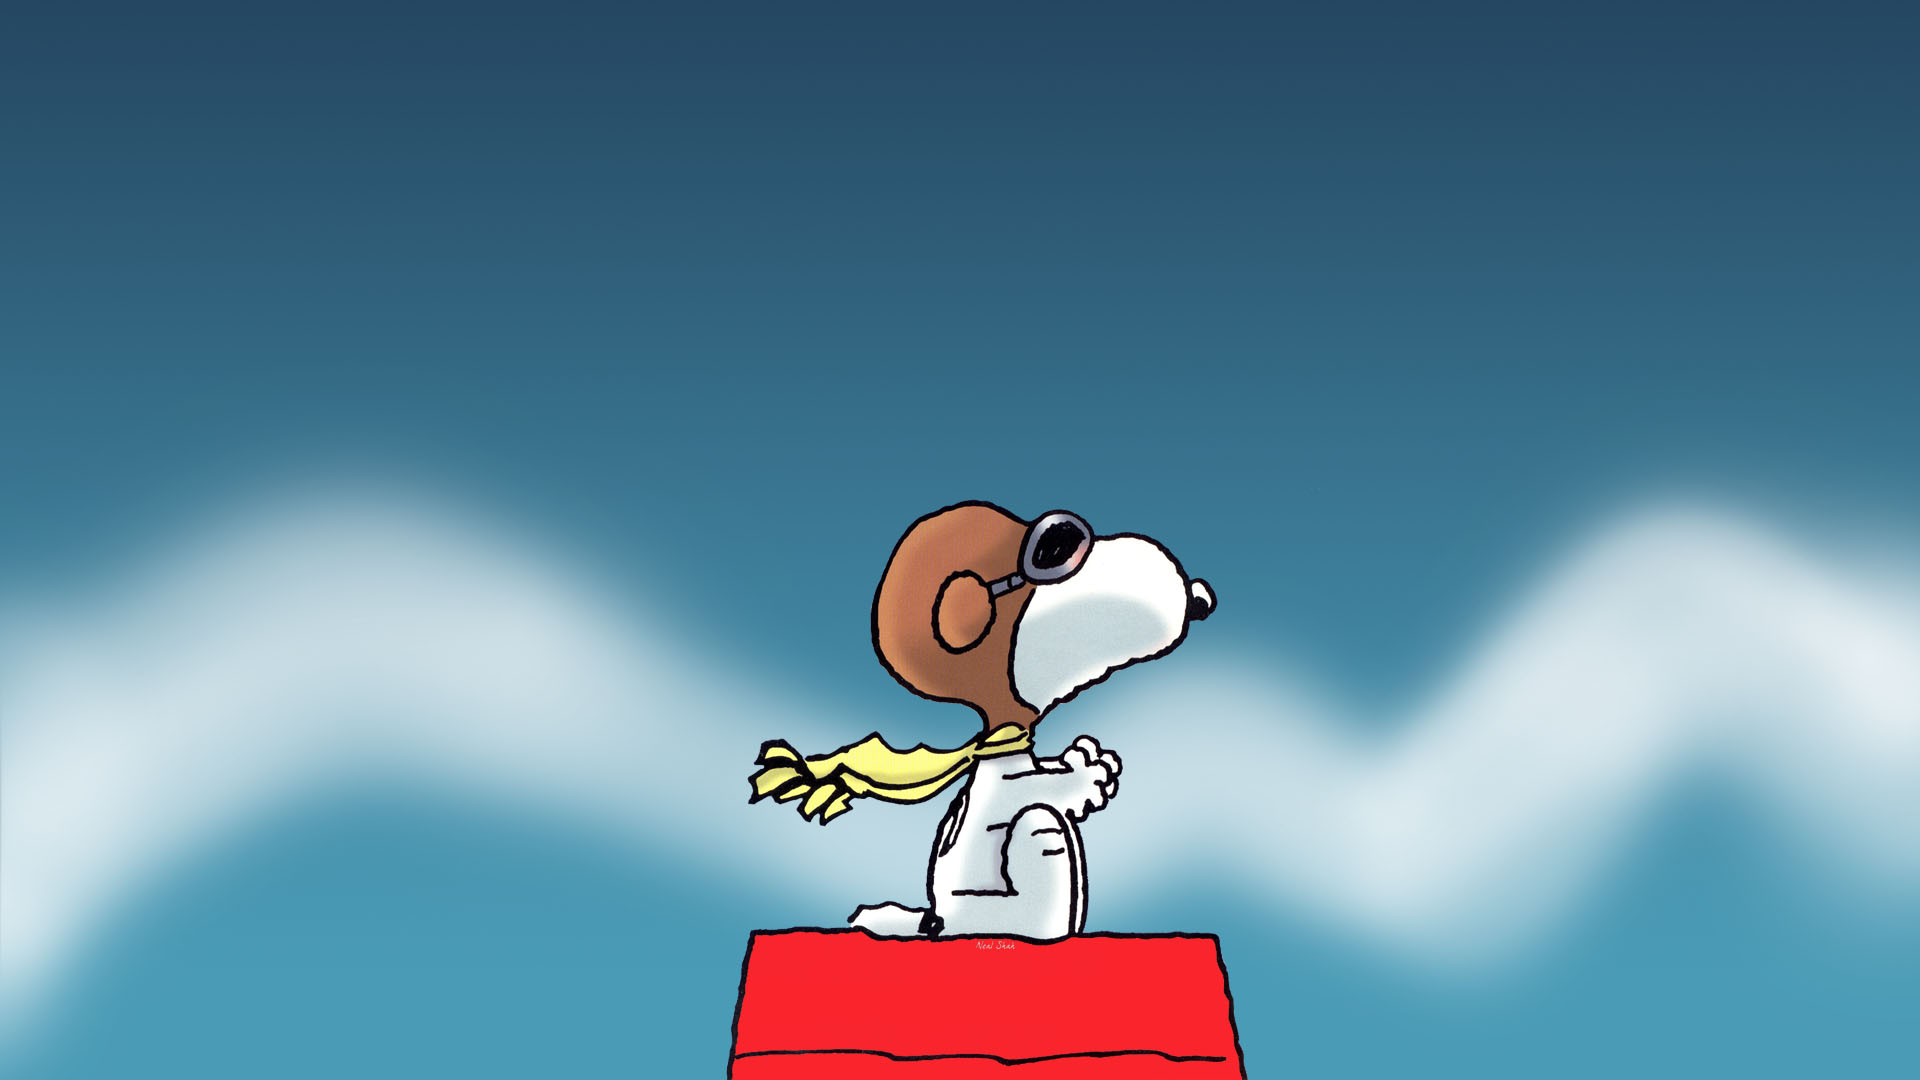 Snoopy Wallpapers HD yellow scarf